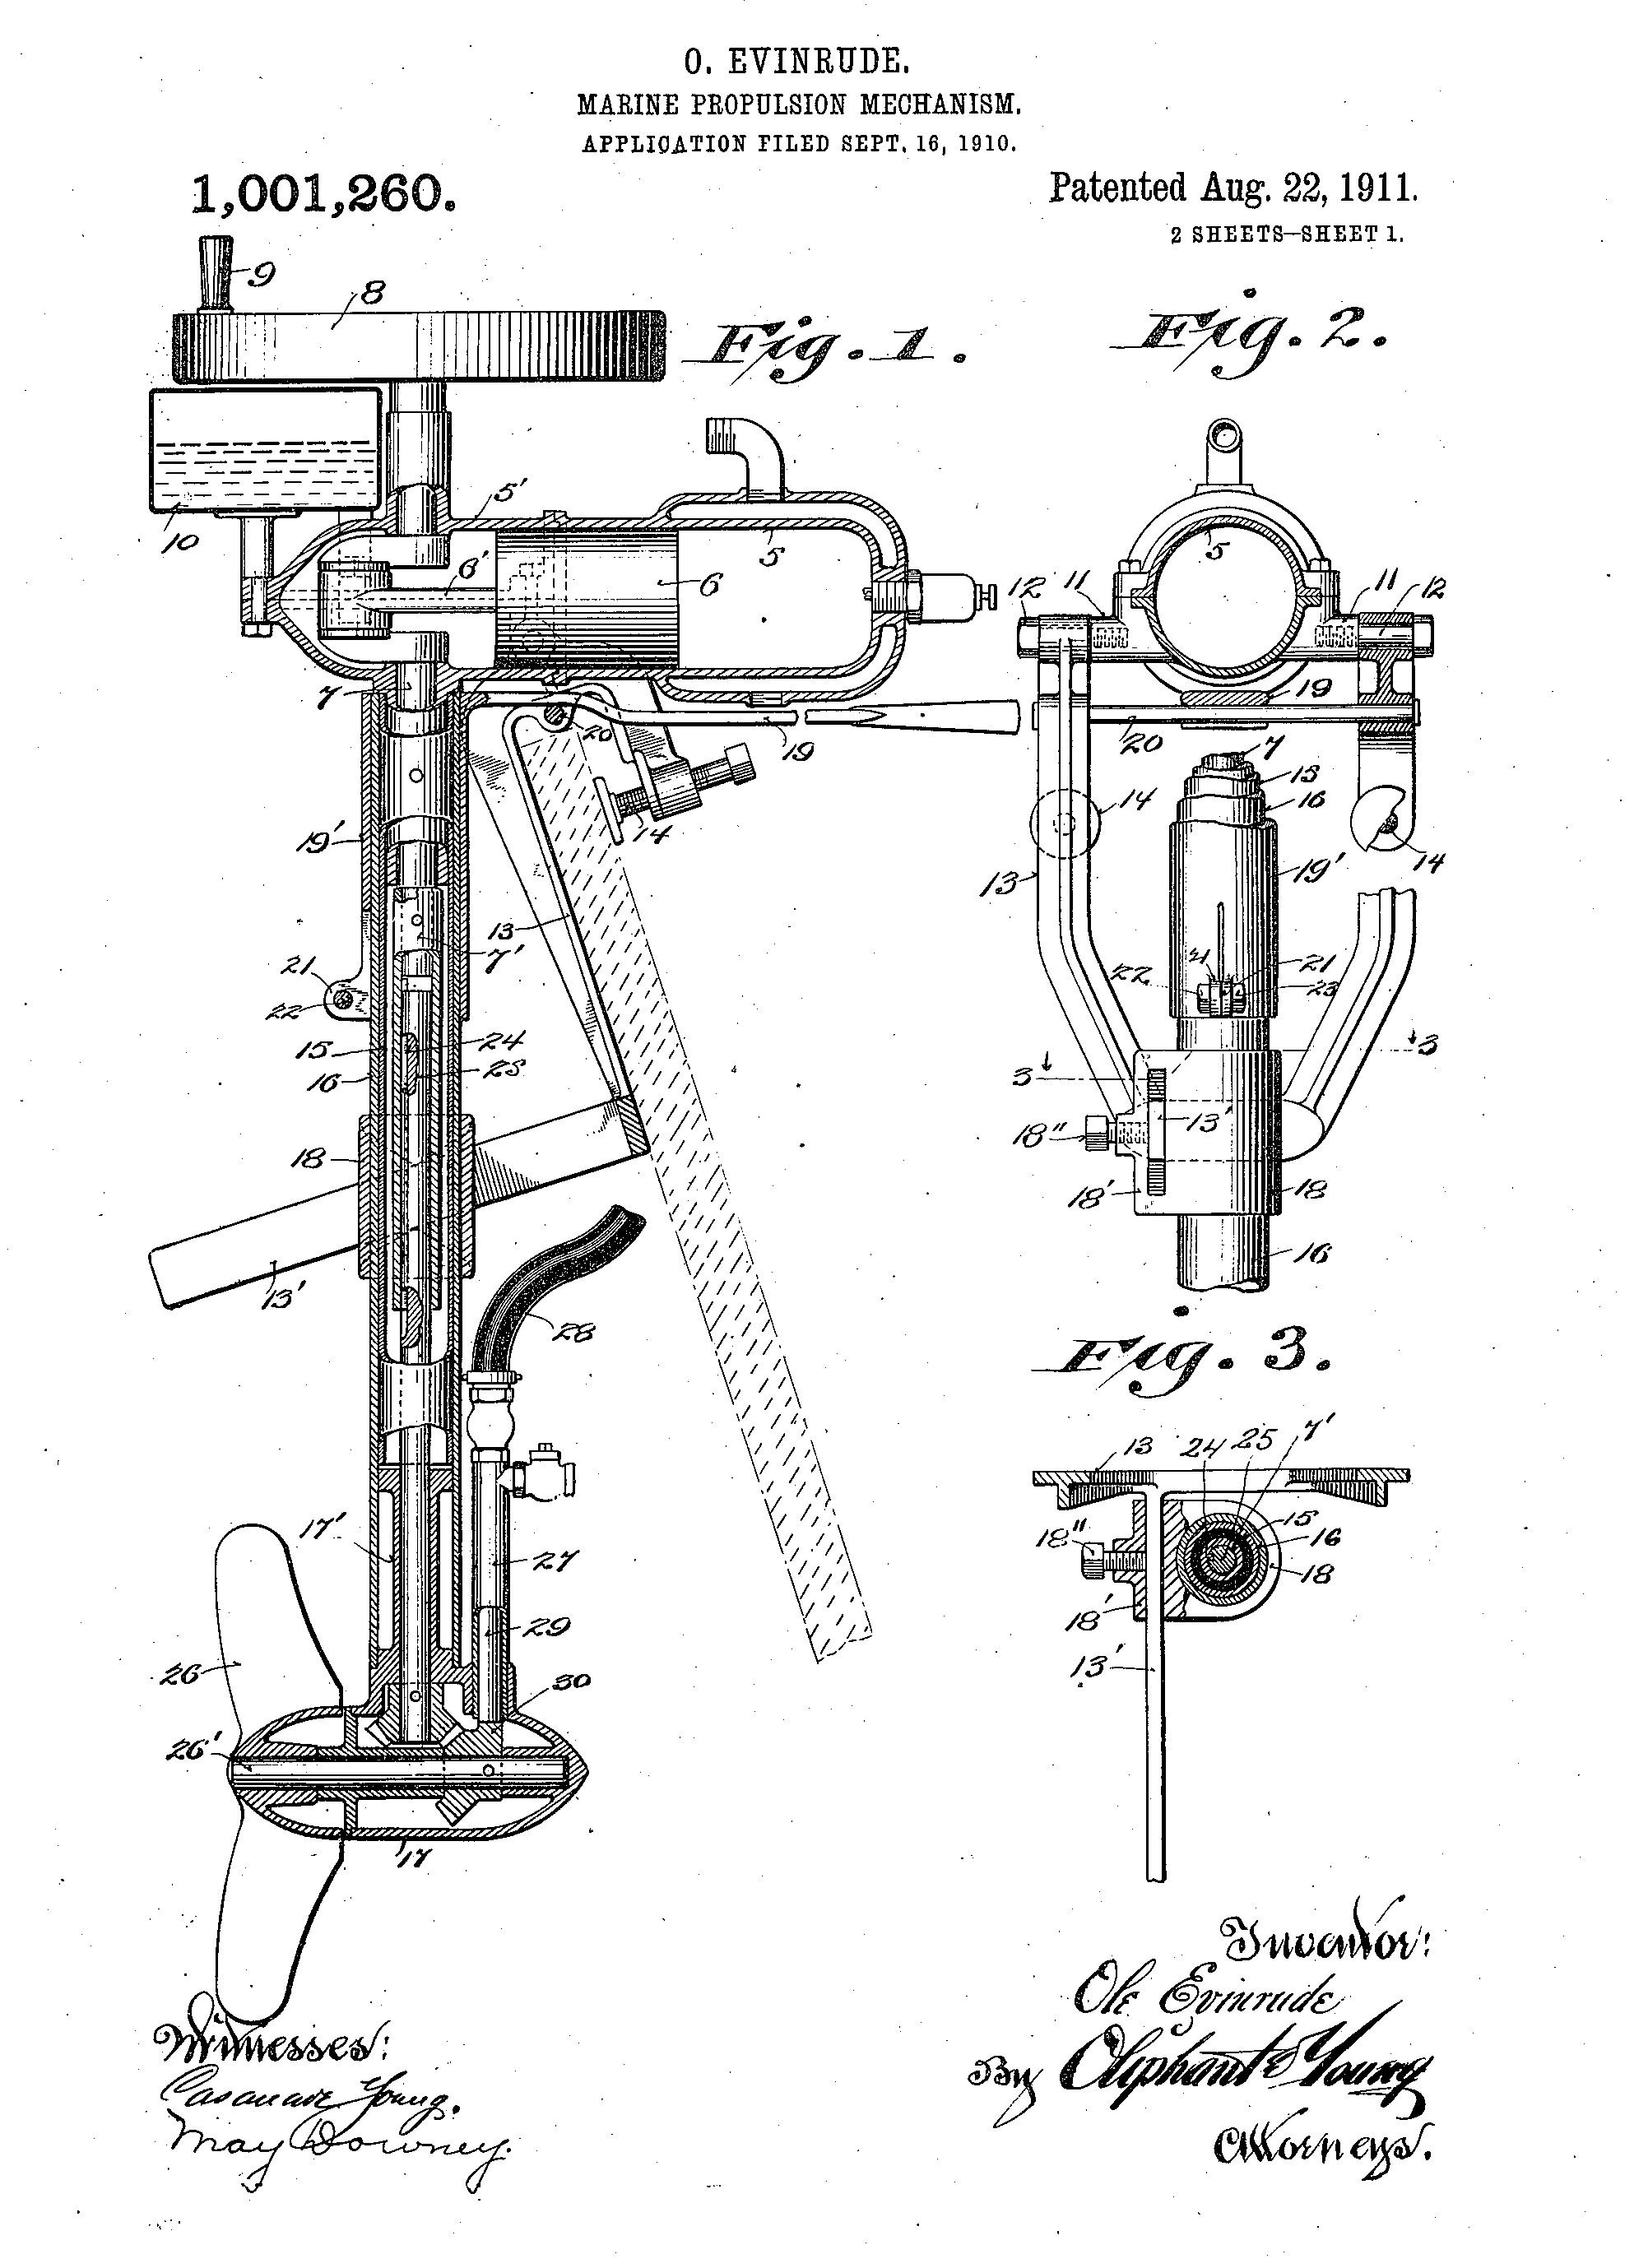 """Patent drawing for """"Marine Propulsion Mechanism"""" by Ole Evinrude."""